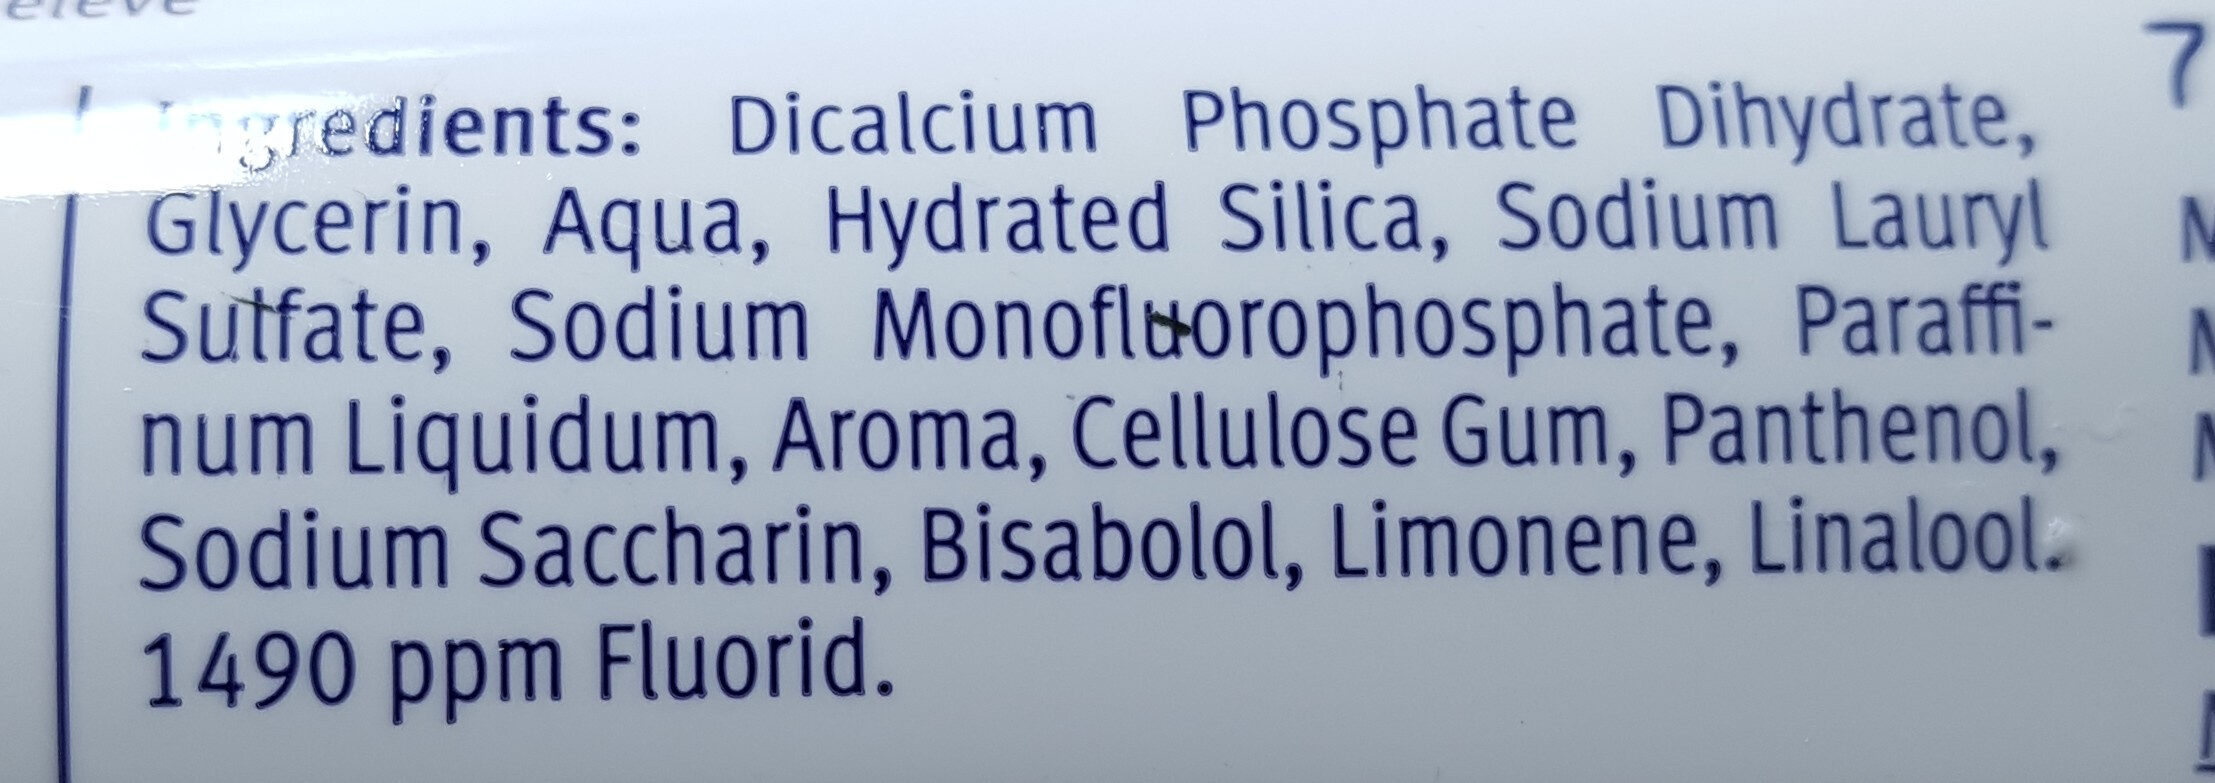 Caries Protection Peppermint - Ingredients - fr